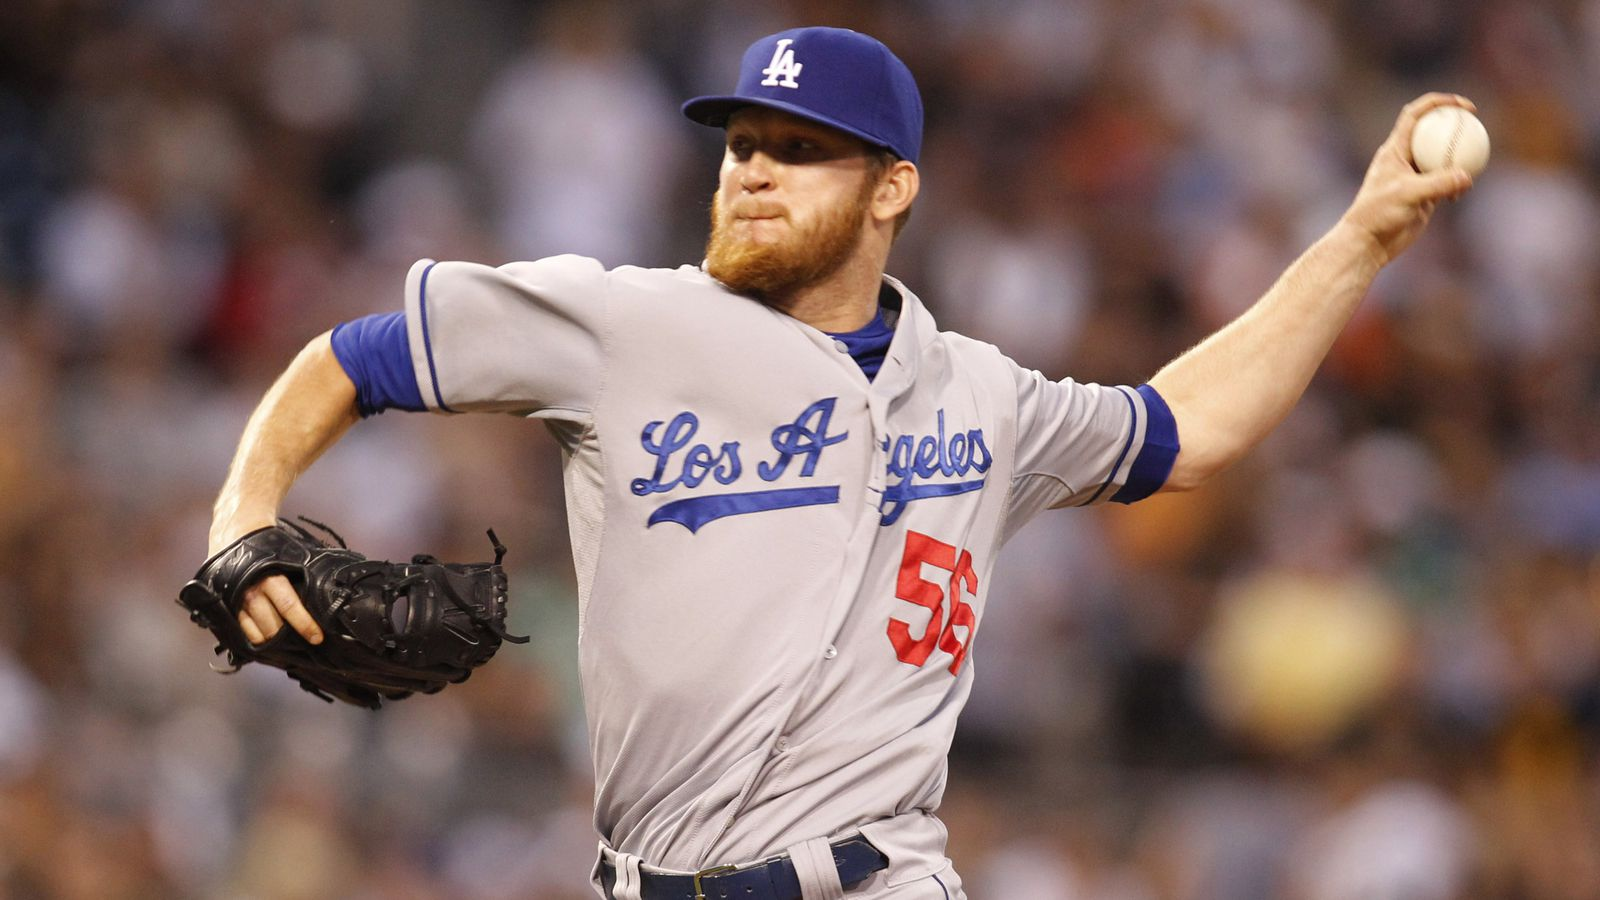 J.P. Howell agrees to 2-year deal with Dodgers, per reports - True Blue LA